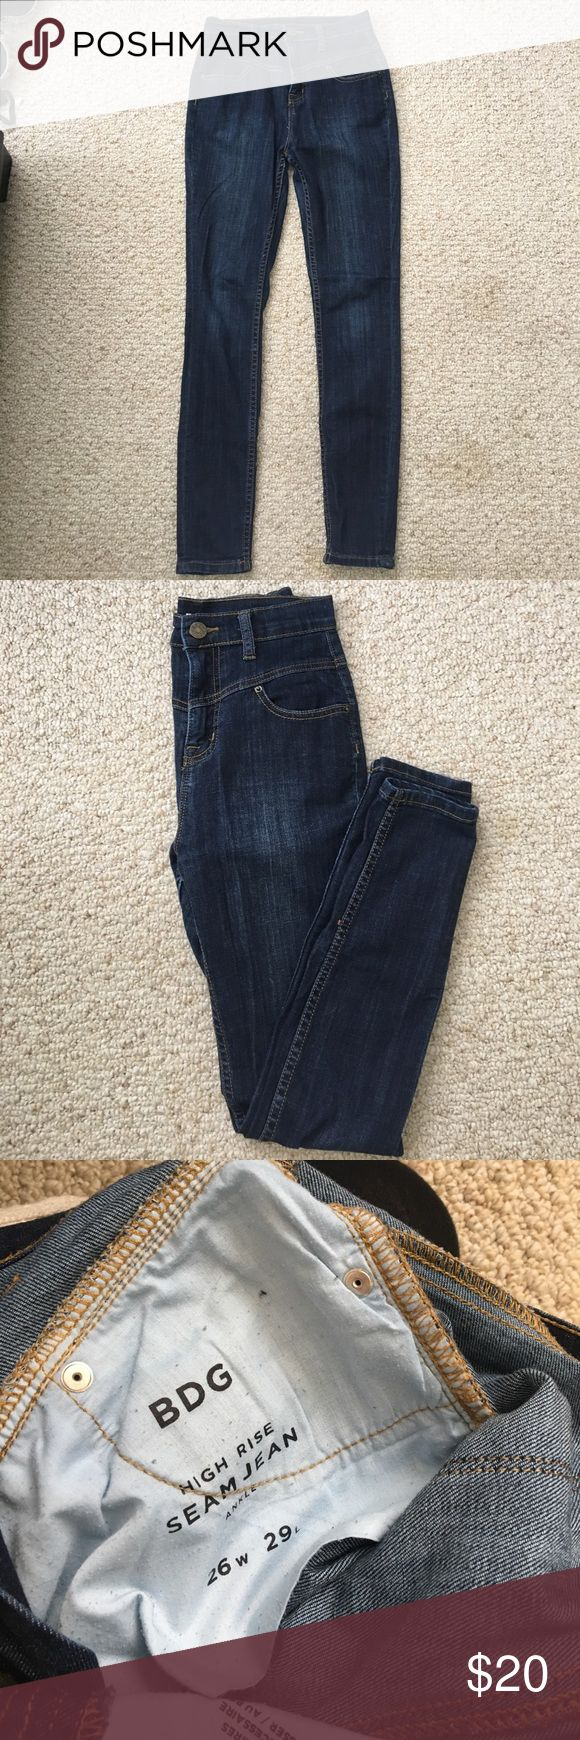 Urban Outfitters BDG high waist denim Urban Outfitters BDG blue high rise Sean jean ankle. Size 26w 29L BDG Jeans Skinny